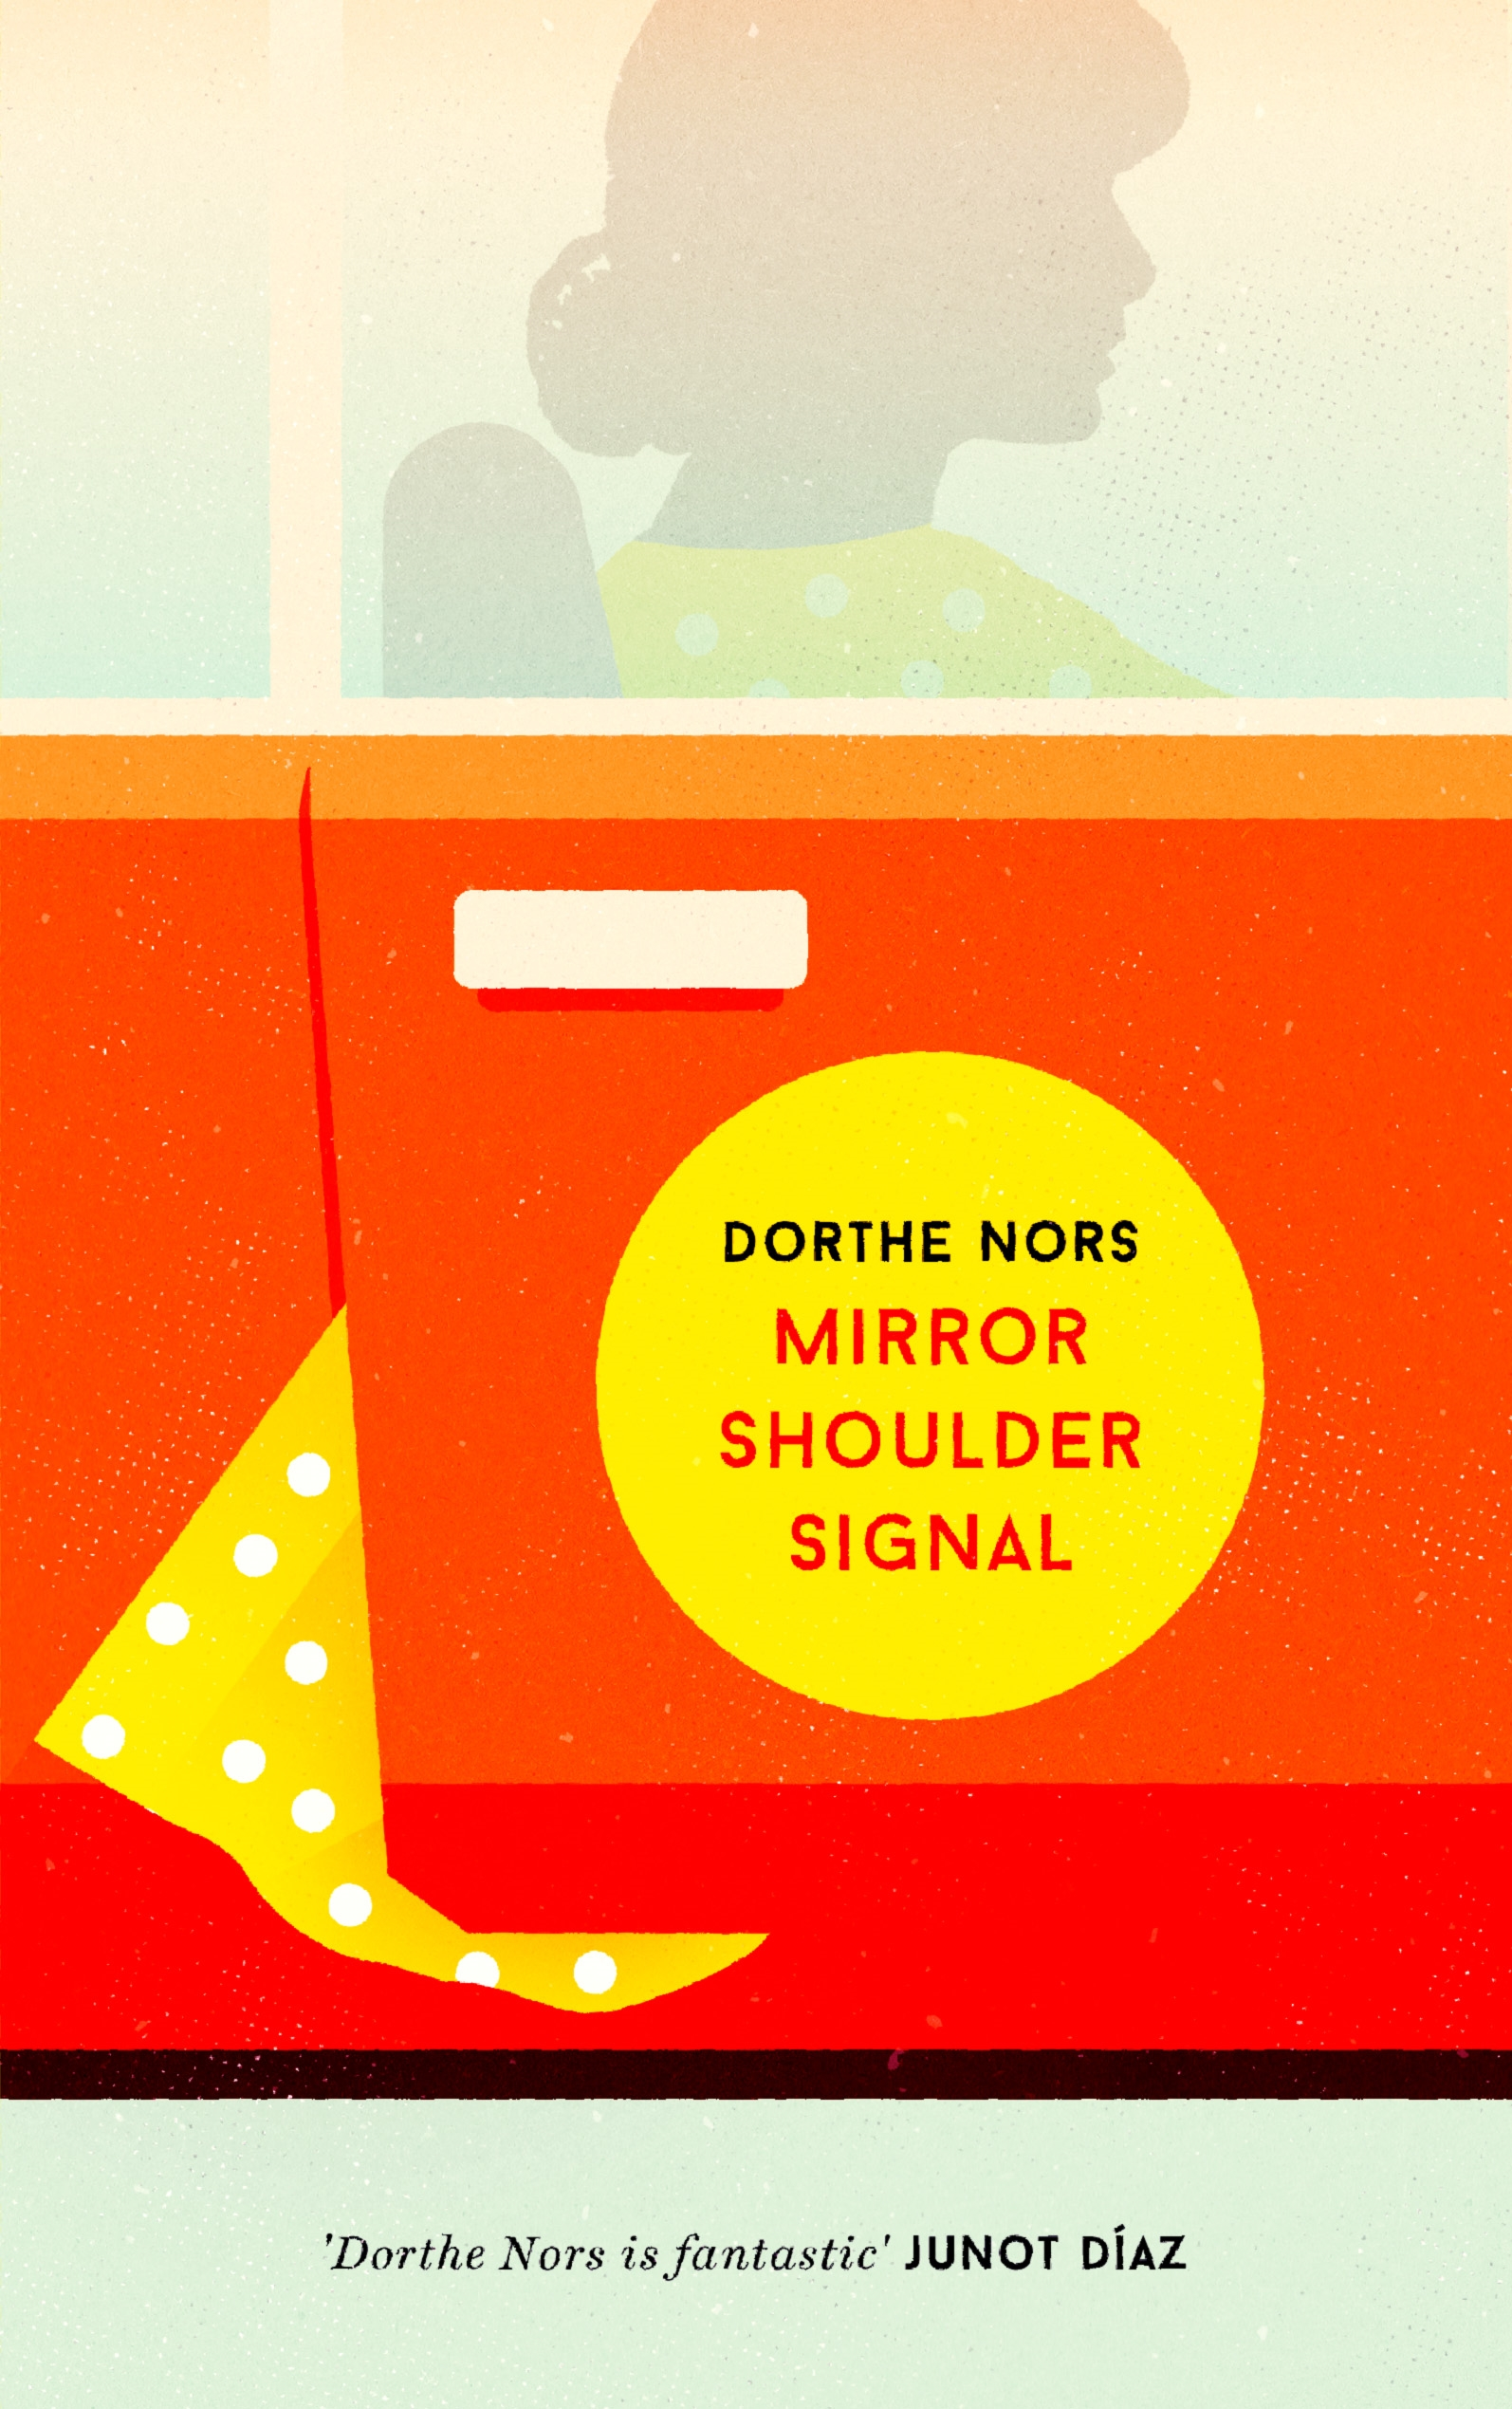 97.dorthe nors mirror  shoulder  signal